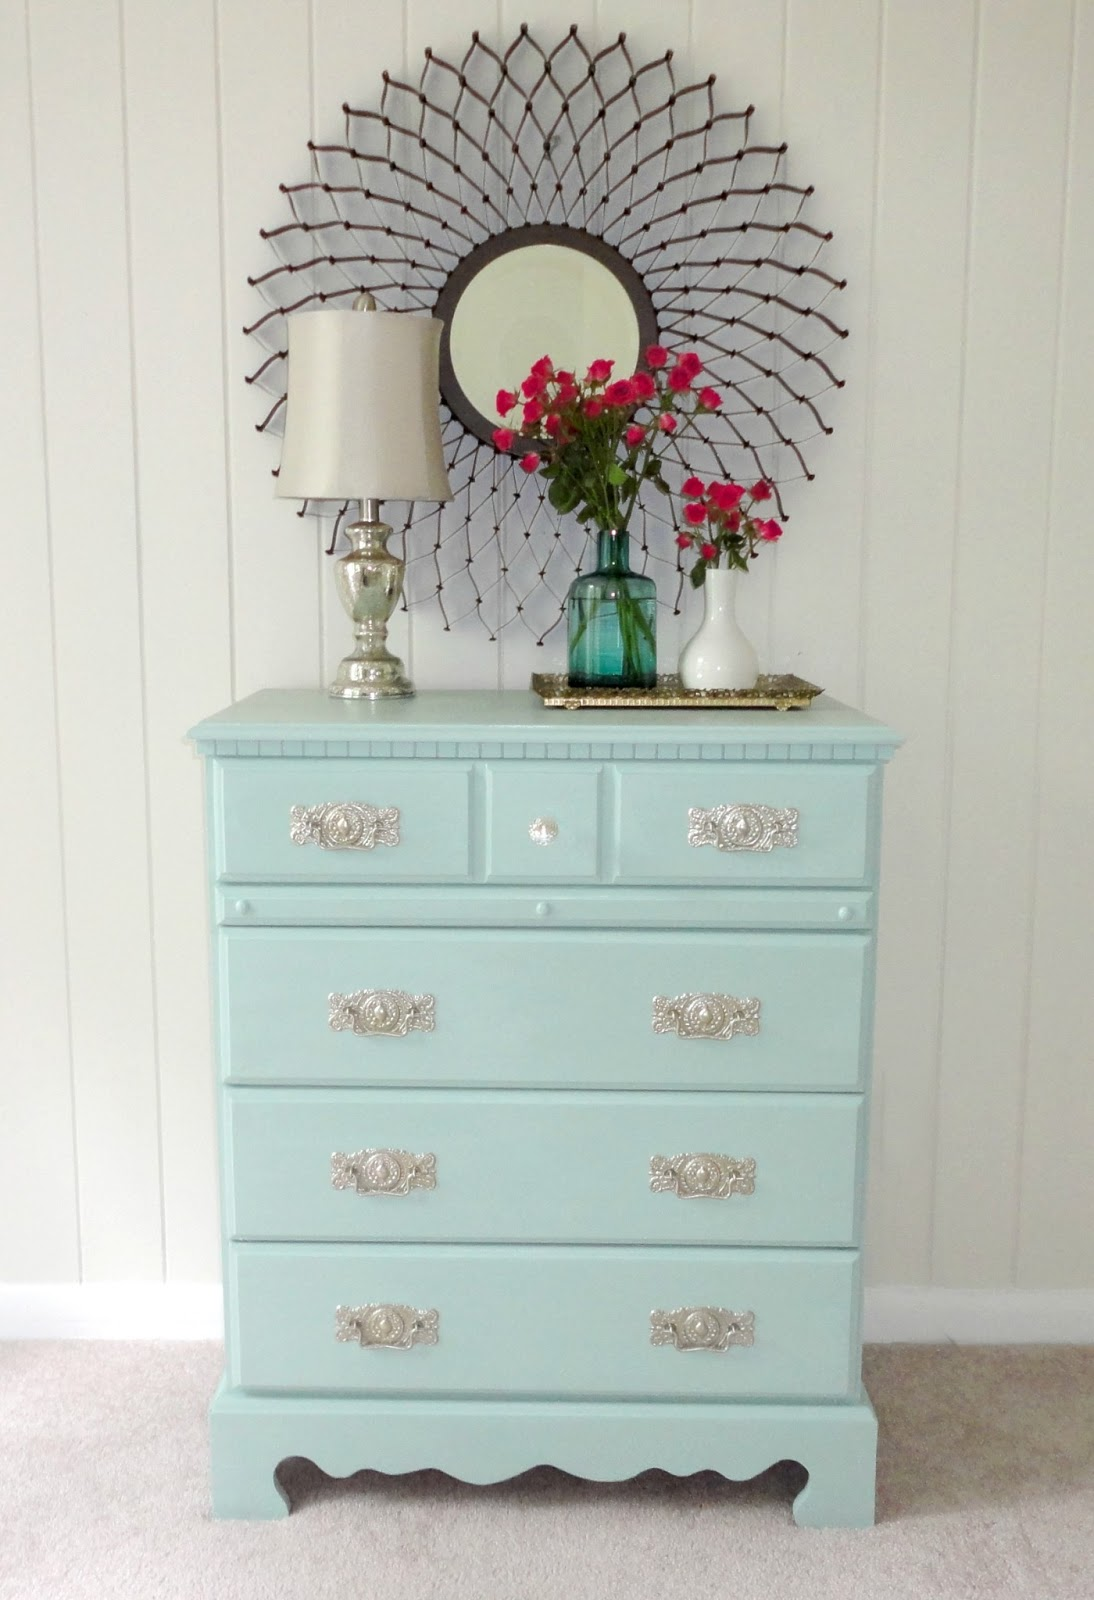 Livelovediy how to paint laminate furniture in 3 easy steps Best color to paint dresser